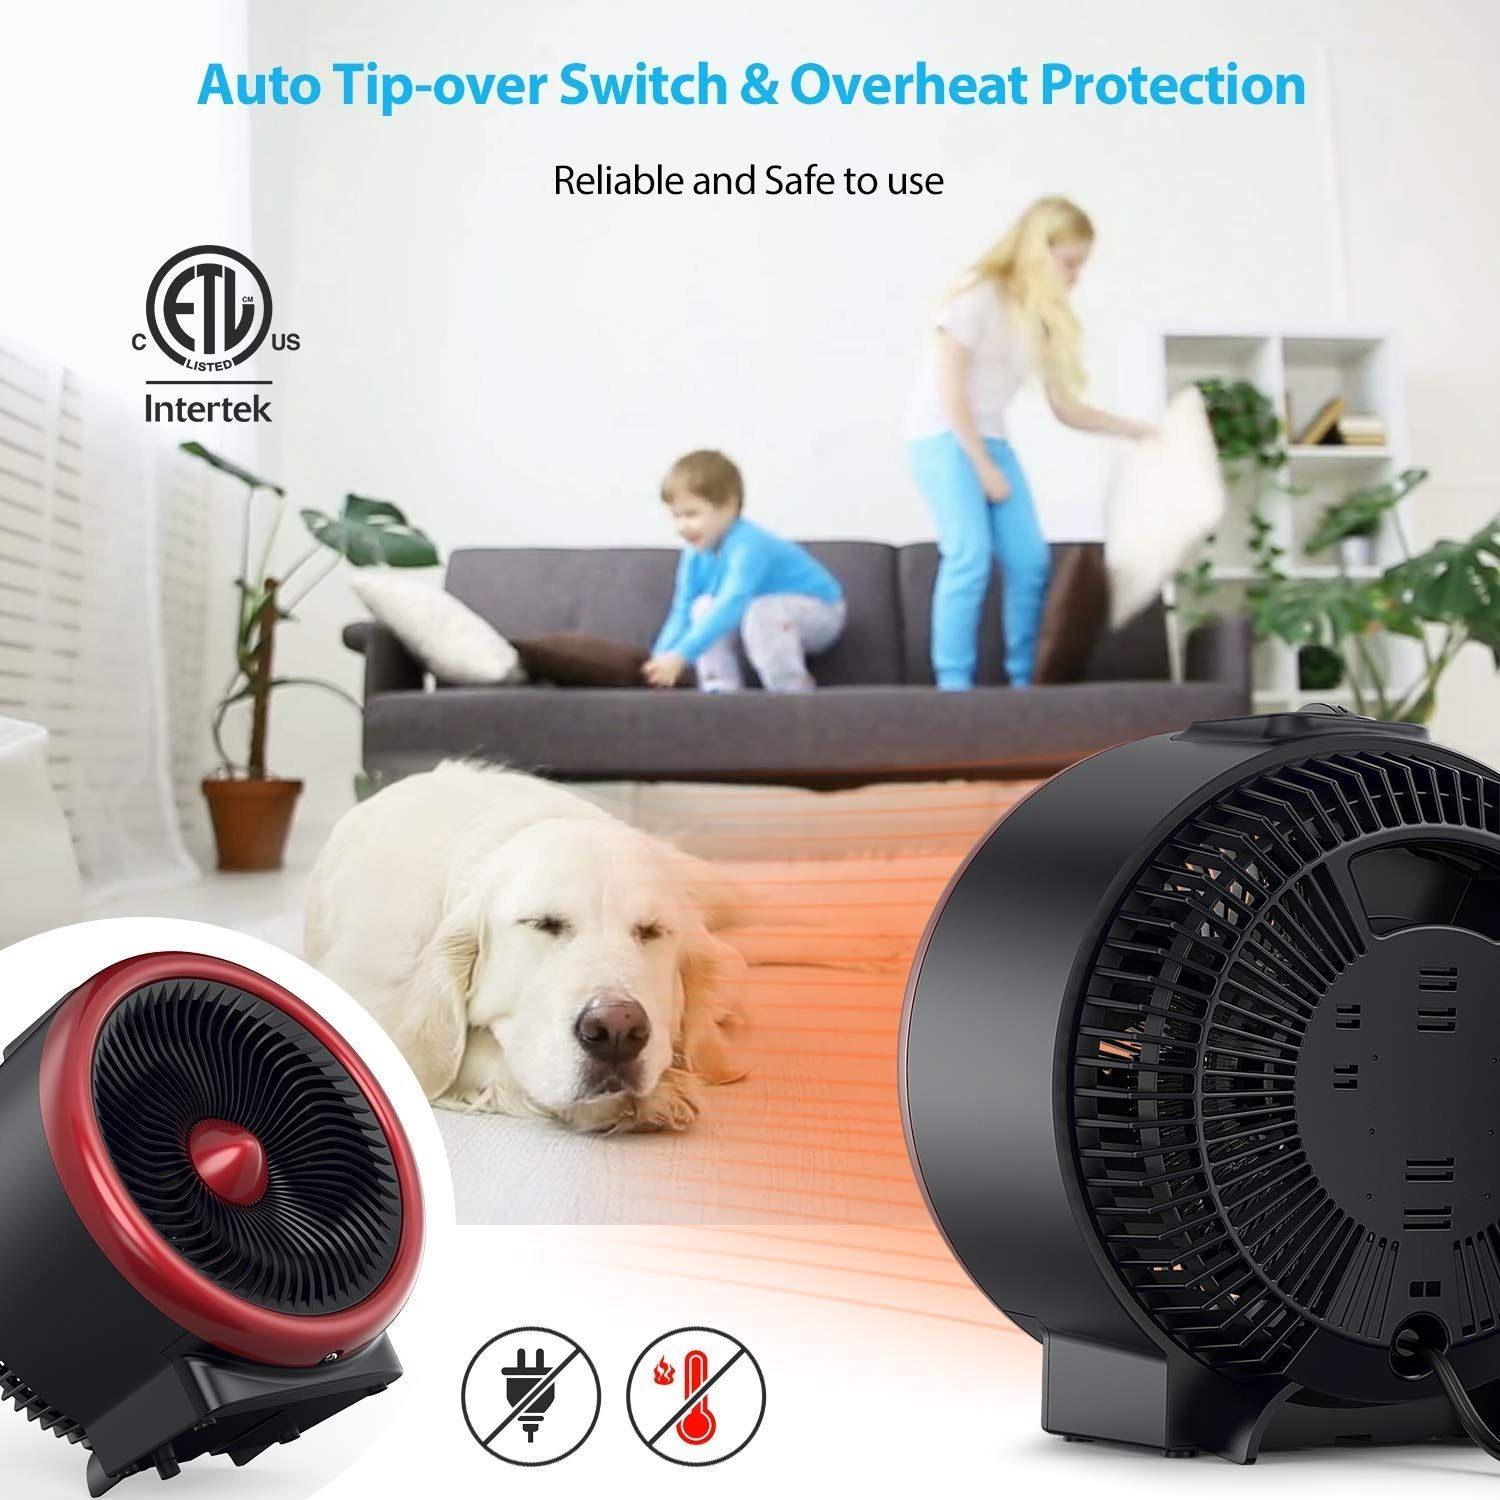 Pelonis Psh700r Portable Quiet Cooling Space Vortex Heater 2 In 1